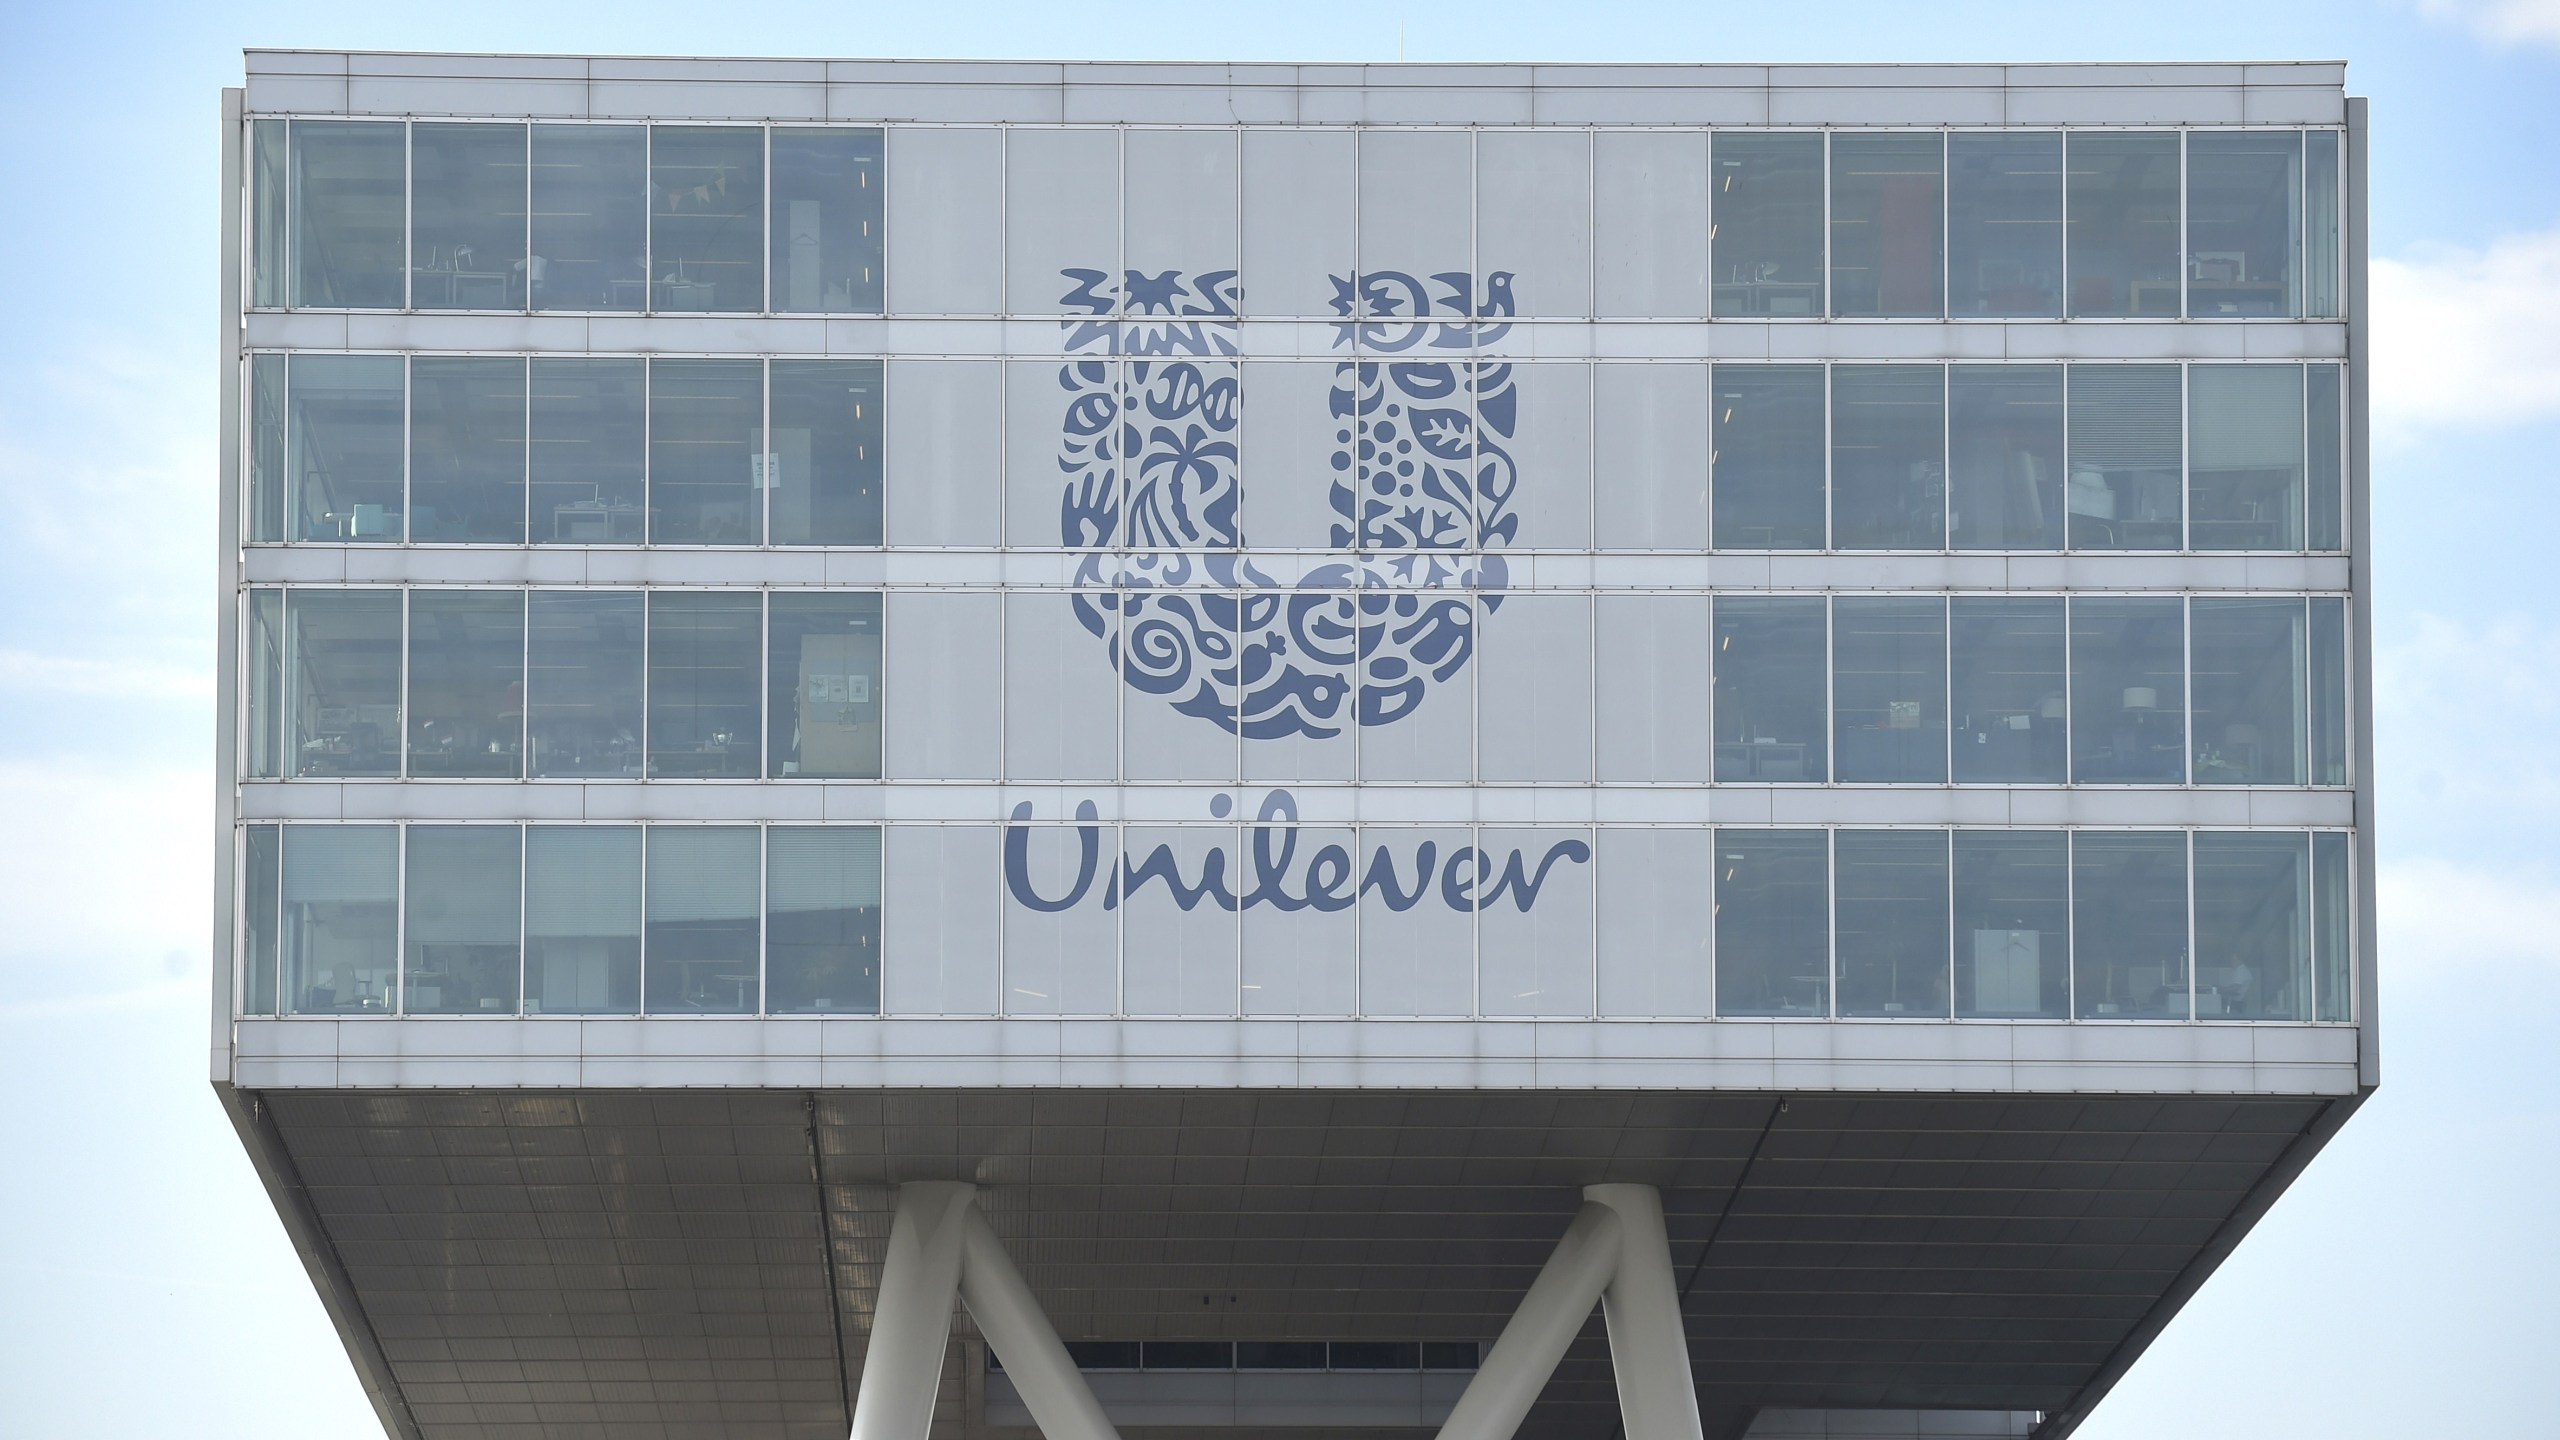 A picture taken on June 5, 2015 shows the logo of Unilever at the headquarters in Rotterdam in the Netherlands. (Credit: JOHN THYS/AFP/Getty Images)